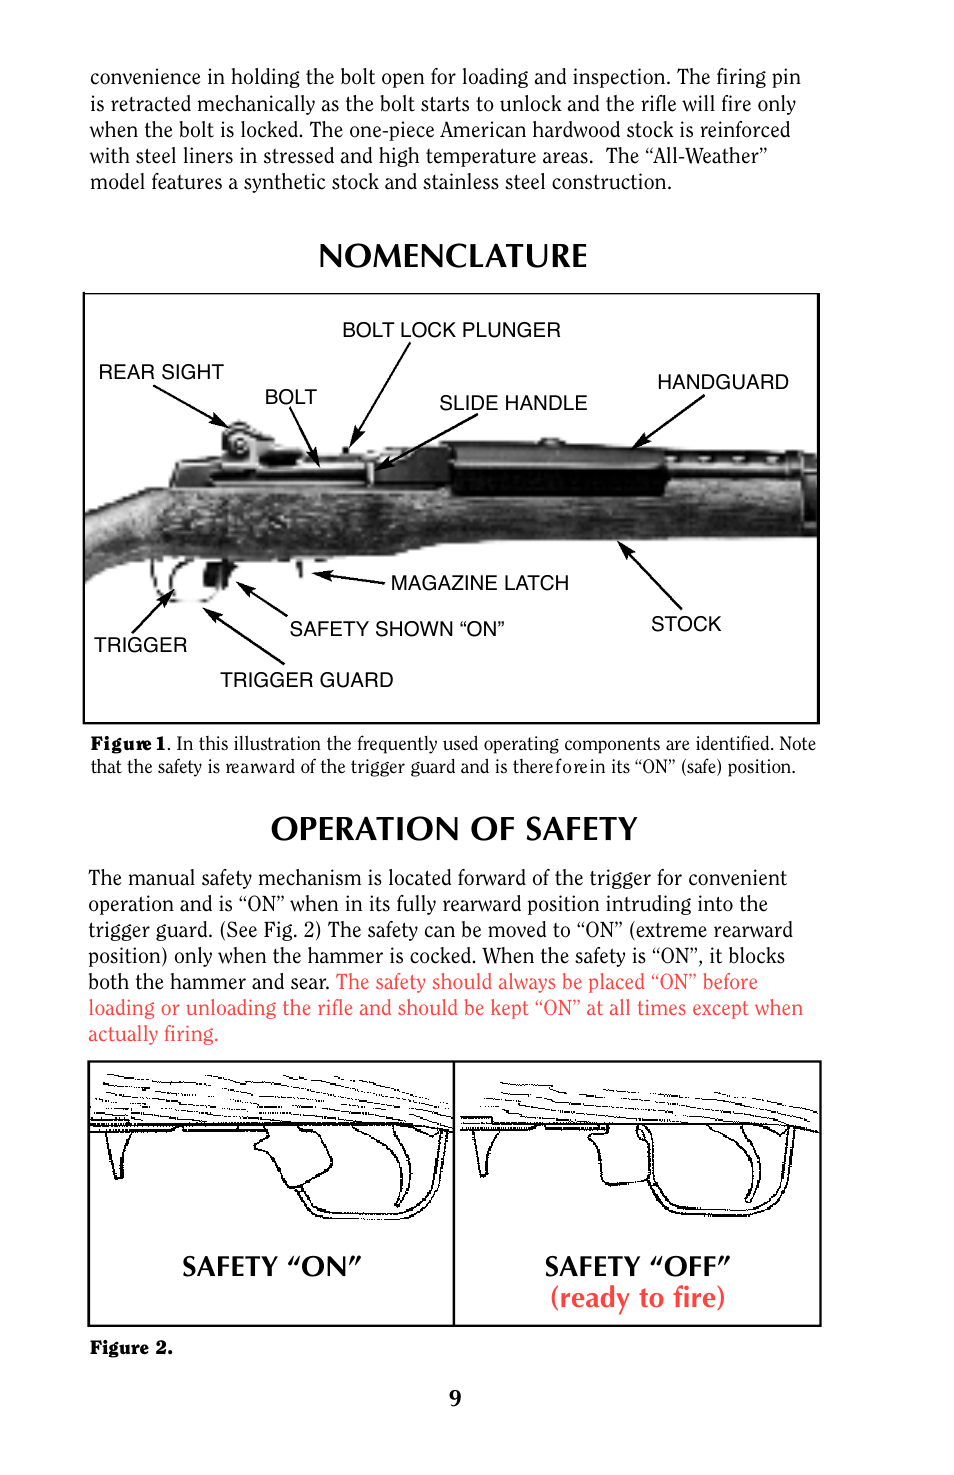 """Nomenclature operation of safety, Safety """"on"""" safety """"off"""" (ready to fire)  